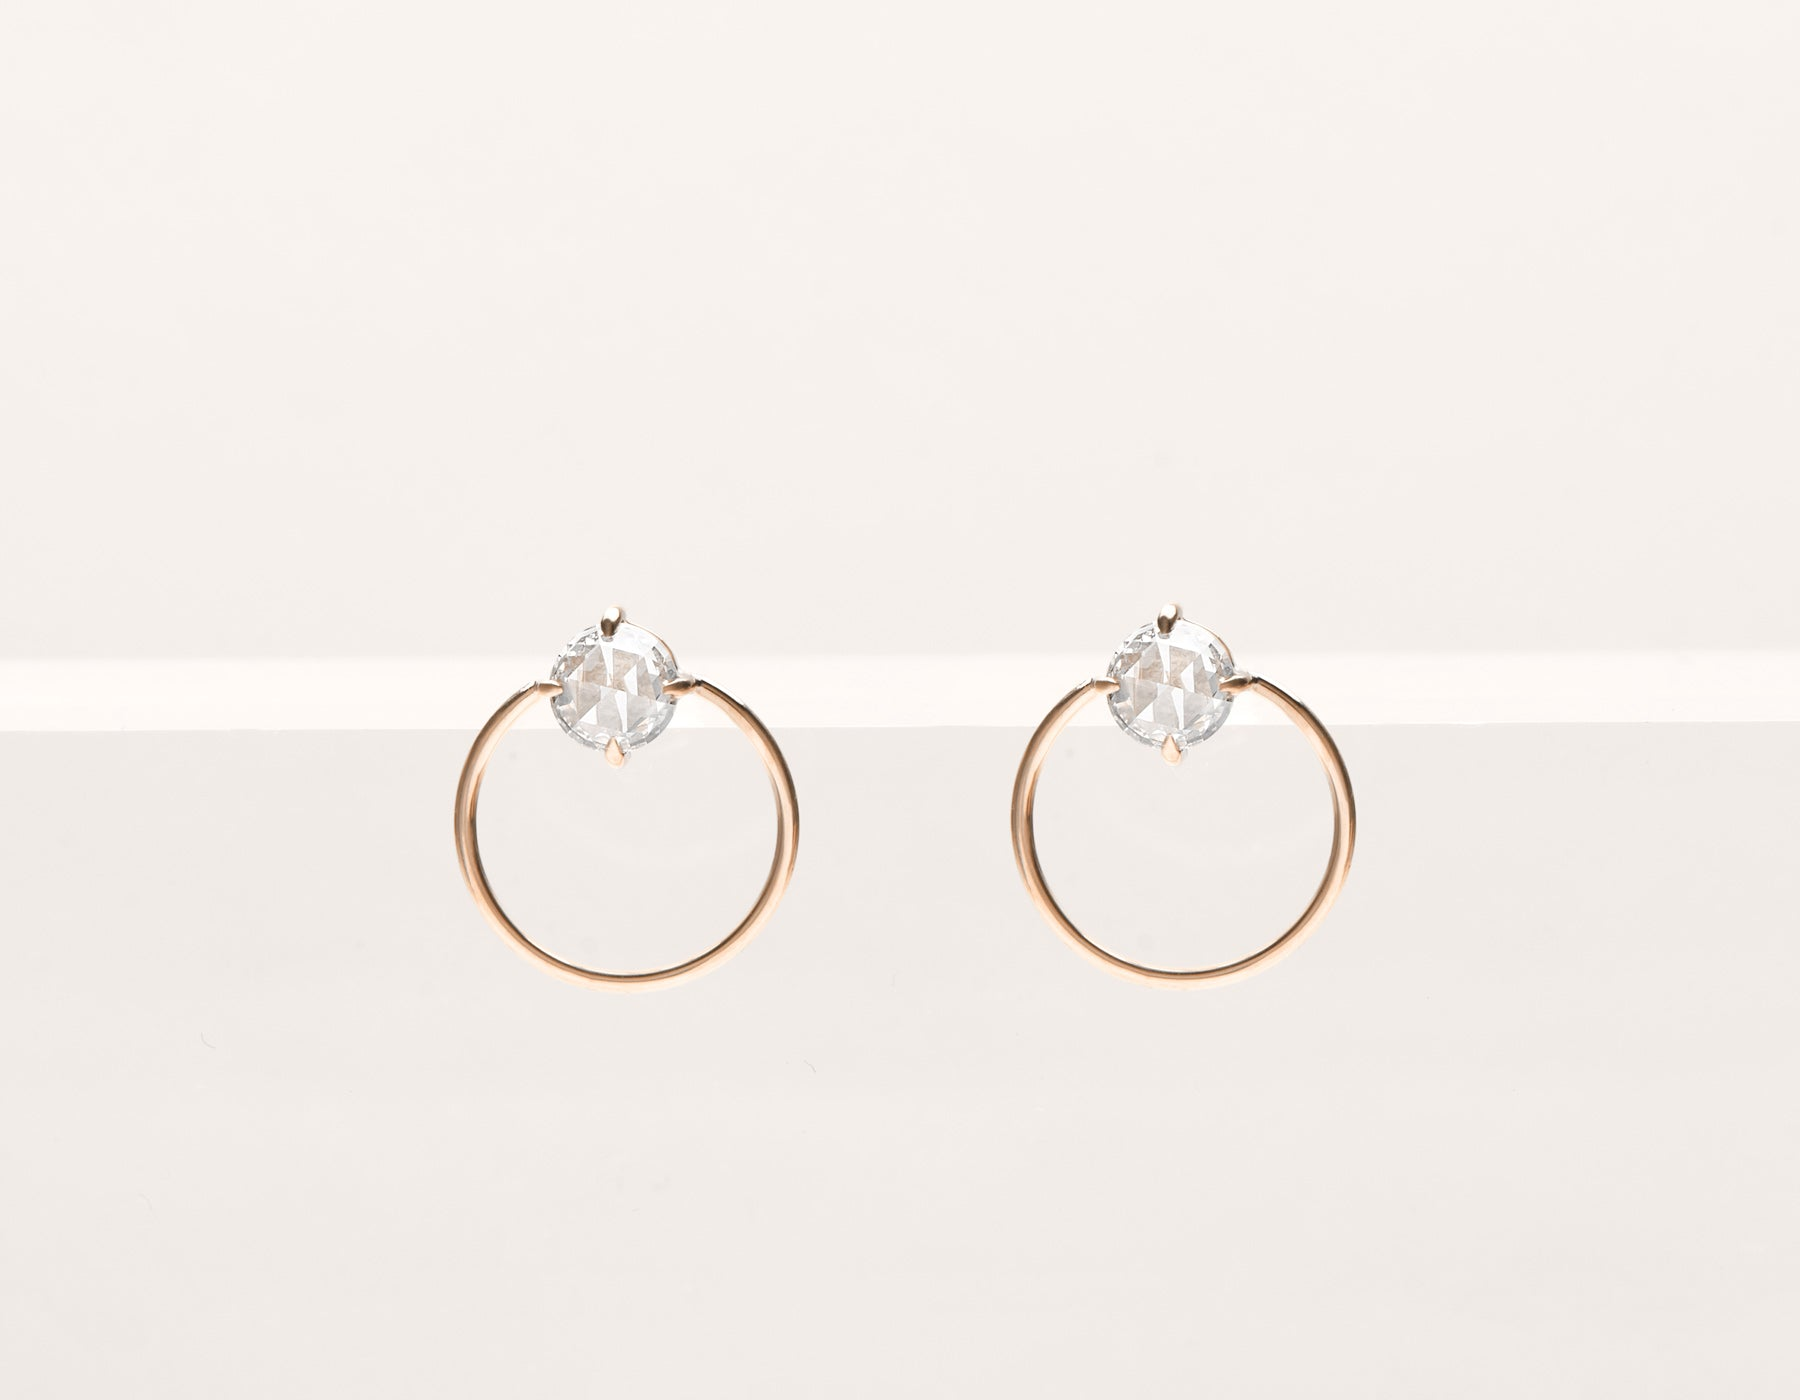 Modern minimalist 18k solid gold rose cut Diamond Door Knocker stud front facing circle hoops earrings by Vrai & Oro black label, 18K Rose Gold